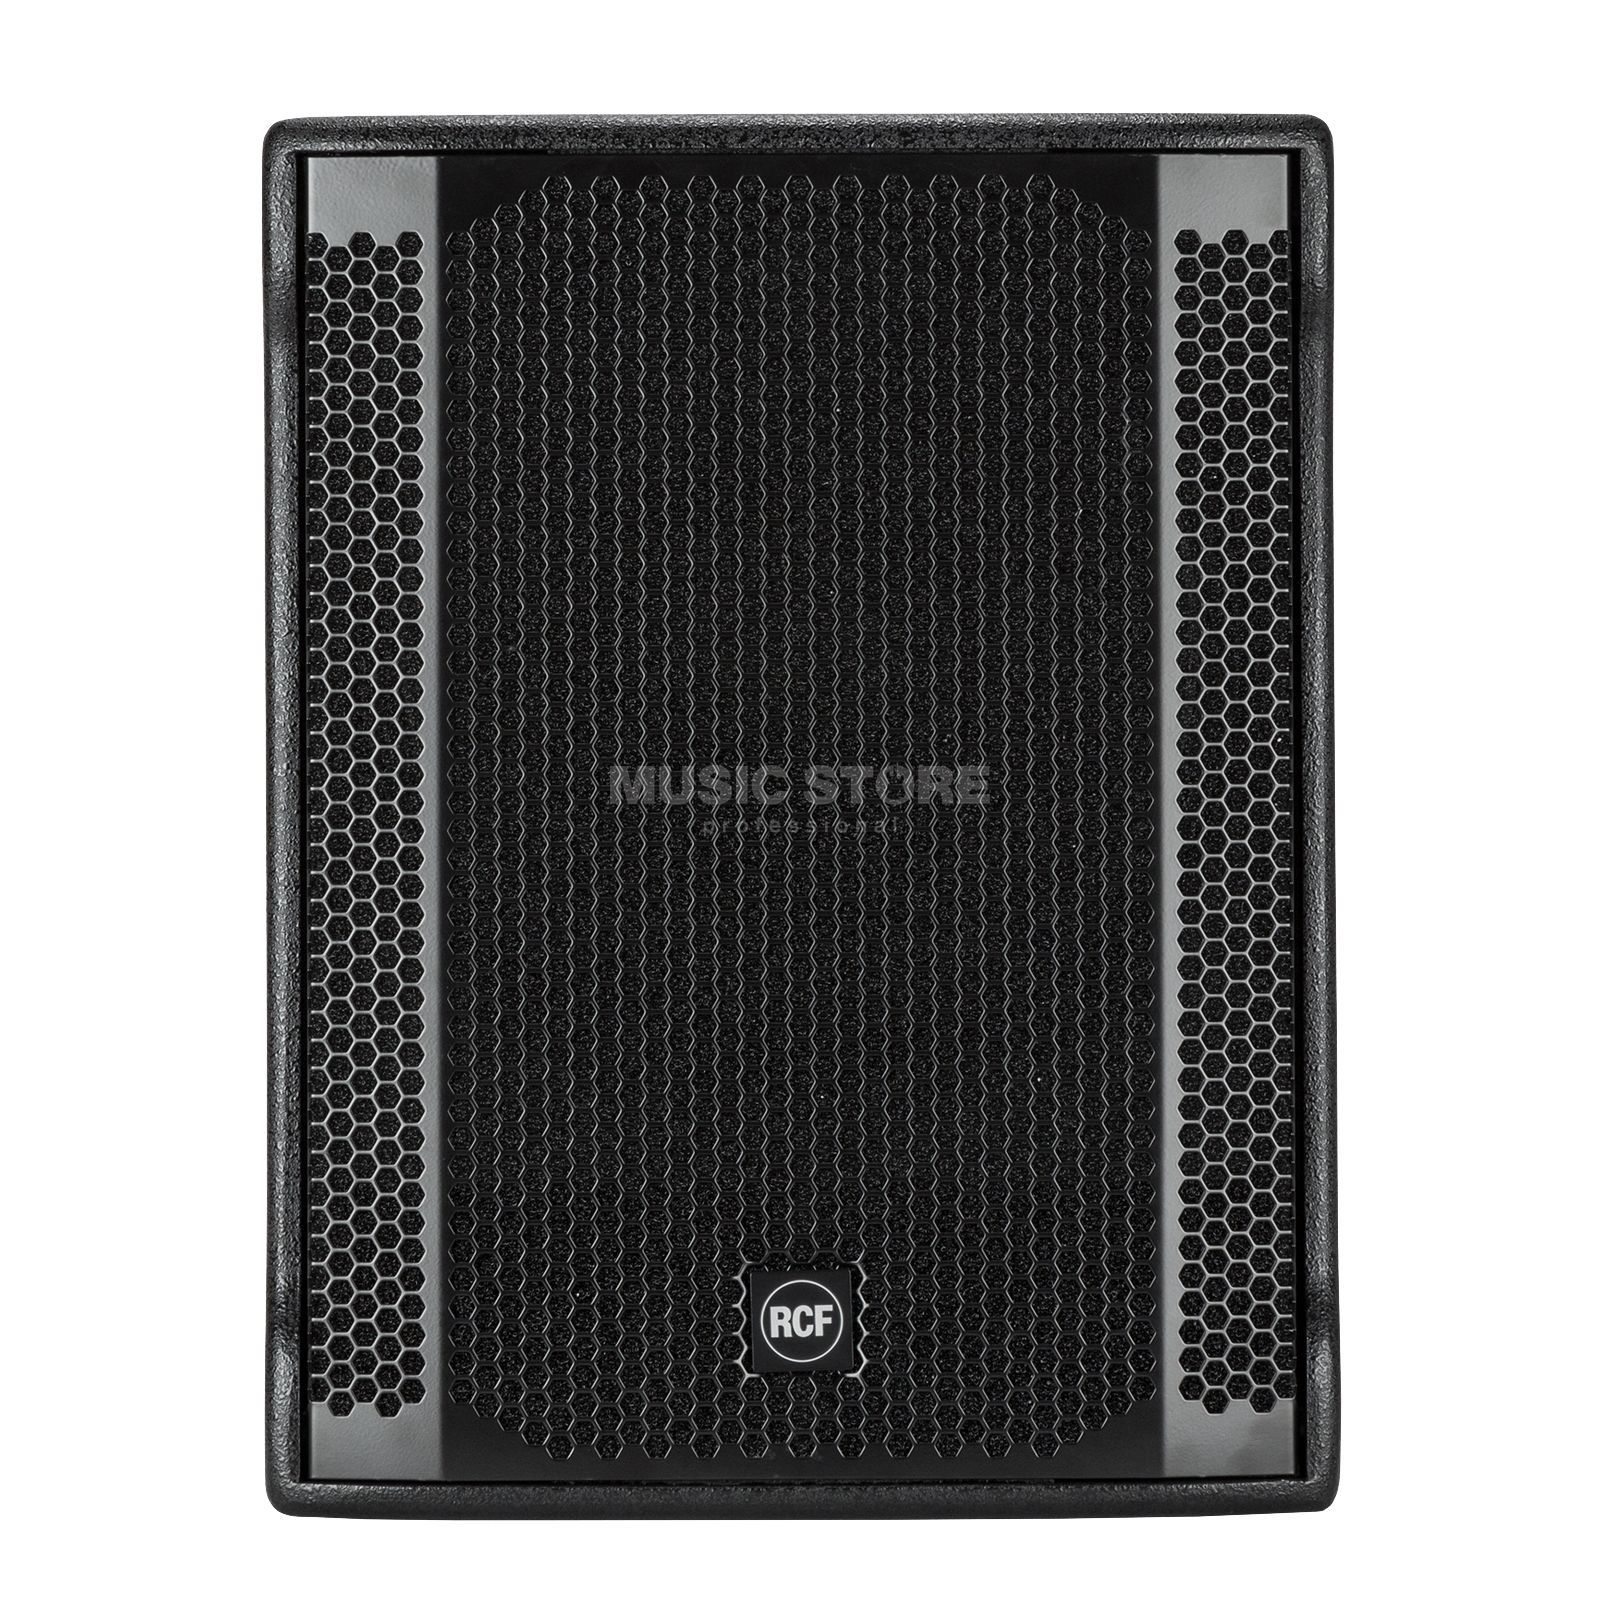 "RCF SUB 705-AS II 15"" Active-Subwoofer, 700 W Produktbild"